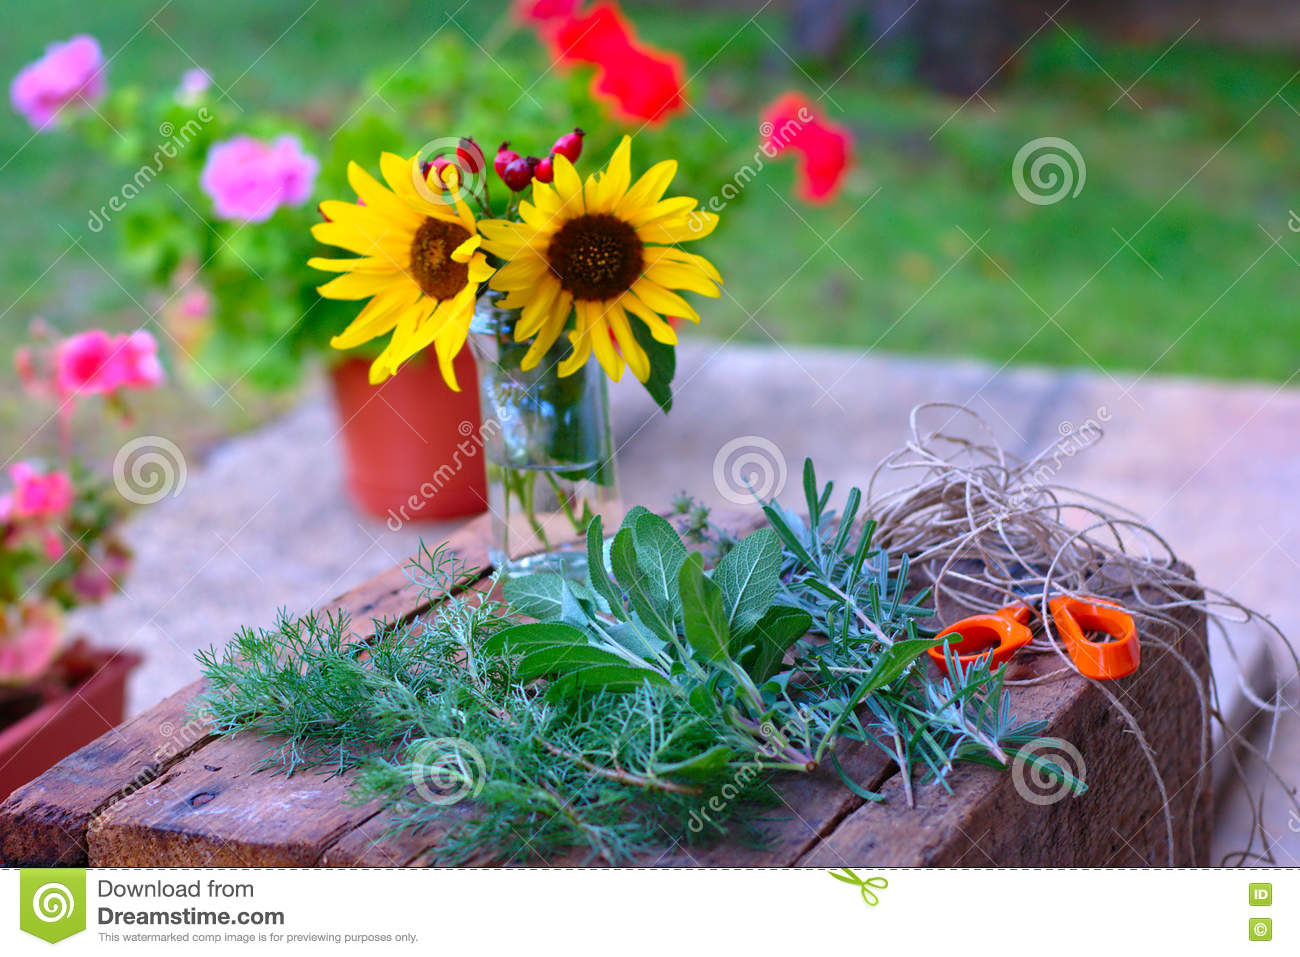 Herbs And Sunflowers